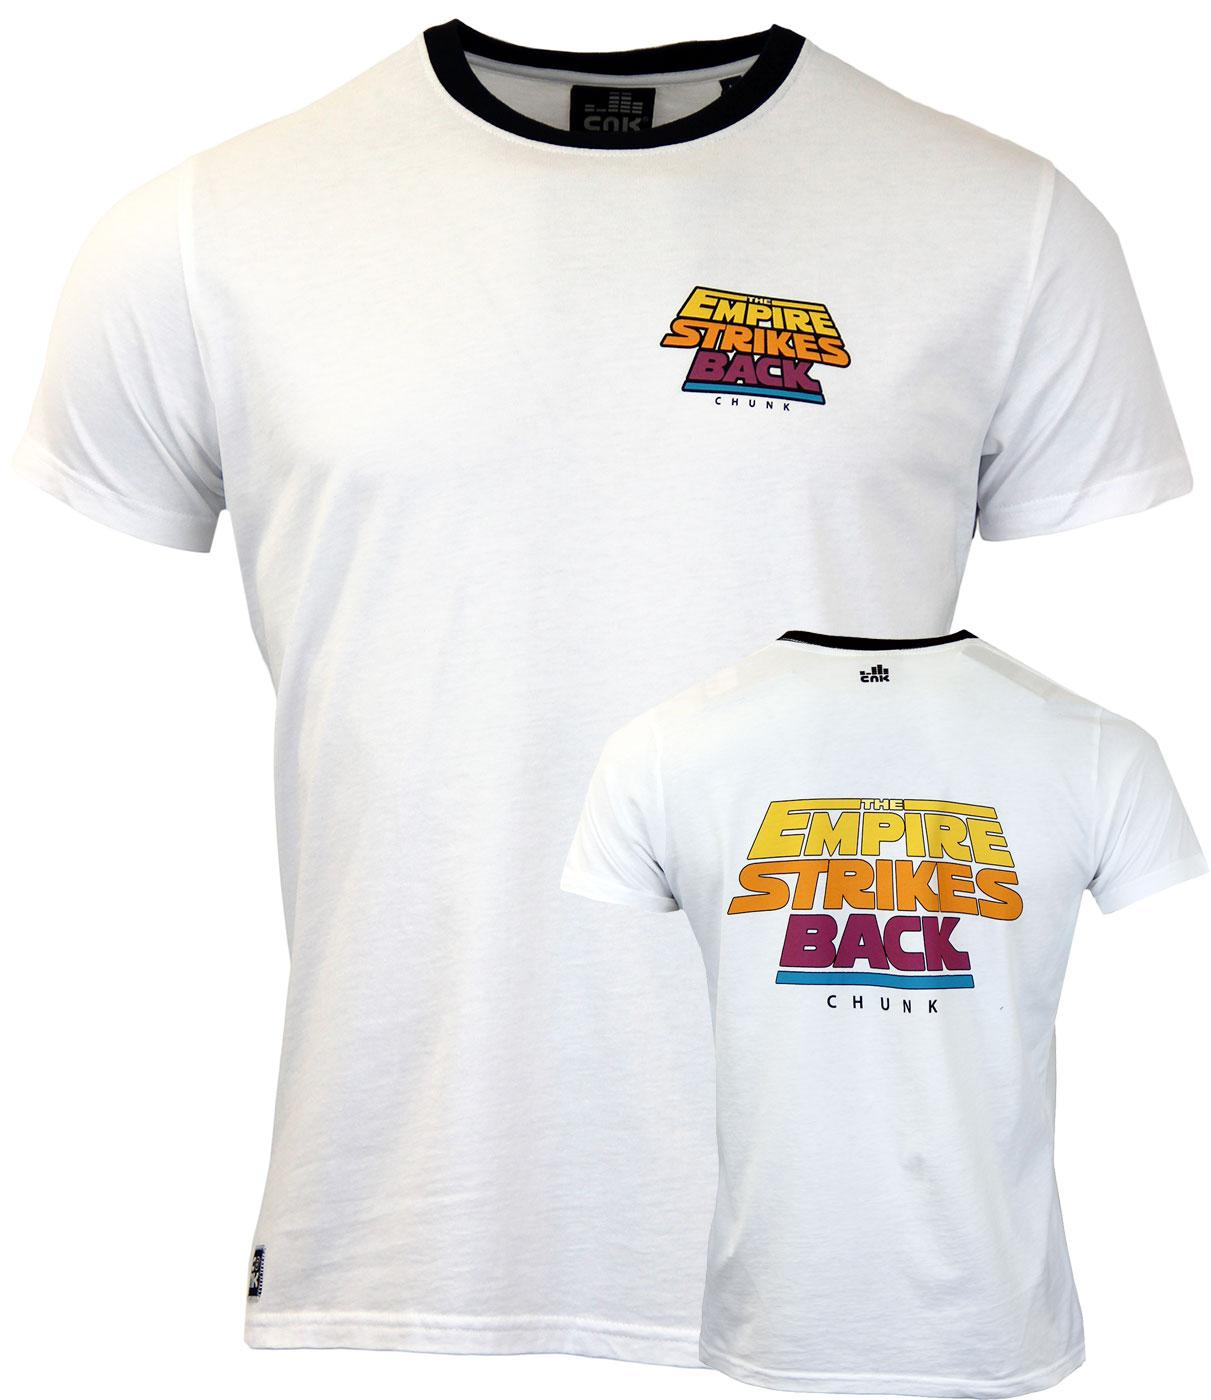 CHUNK Empire Strikes Back Retro 80s Star Wars Tee